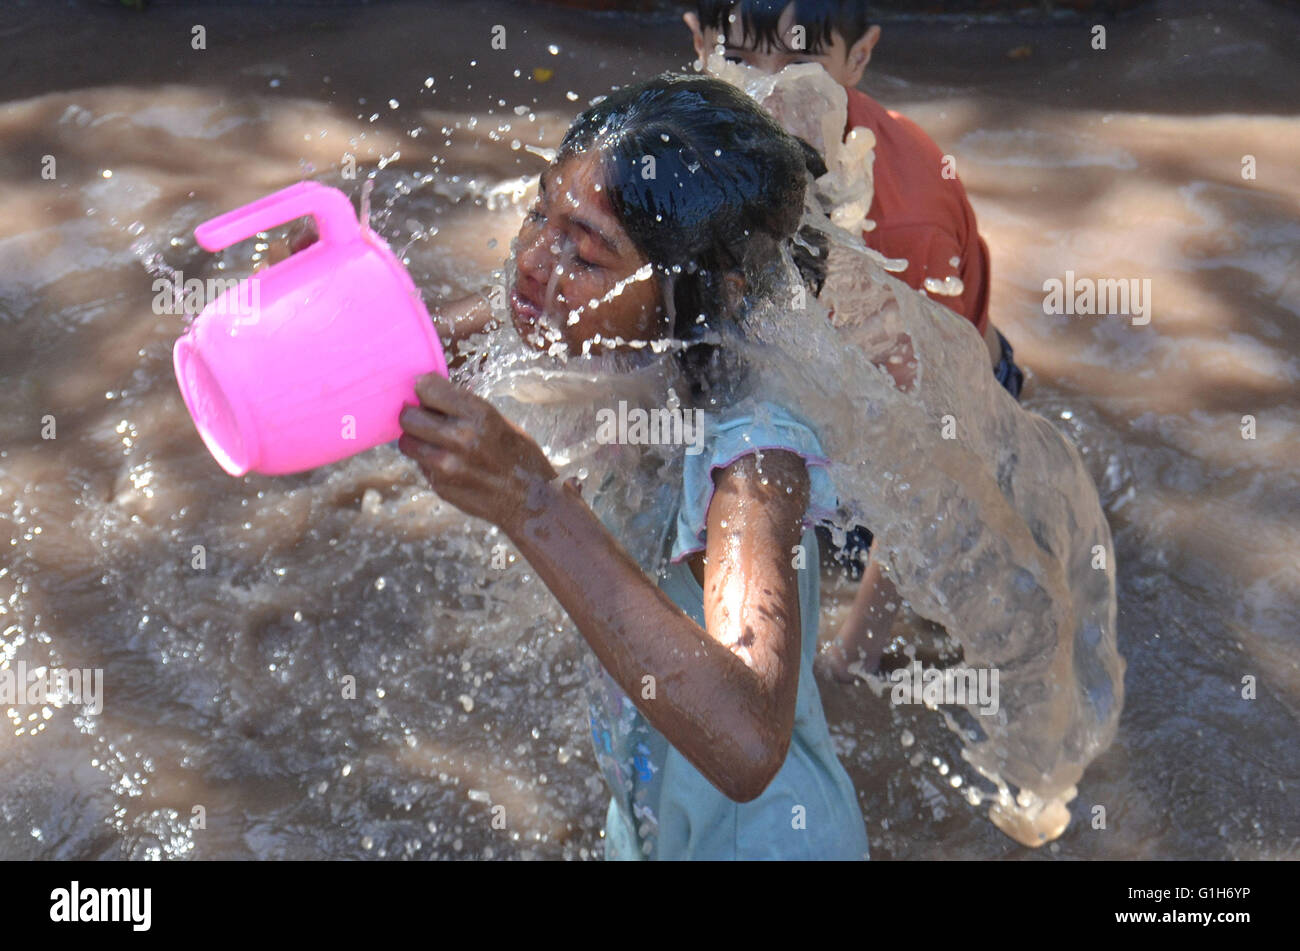 Lahore, Pakistan. 15th May, 2016. A large number of Pakistani people People enjoying water slide at jallo park to - Stock Image